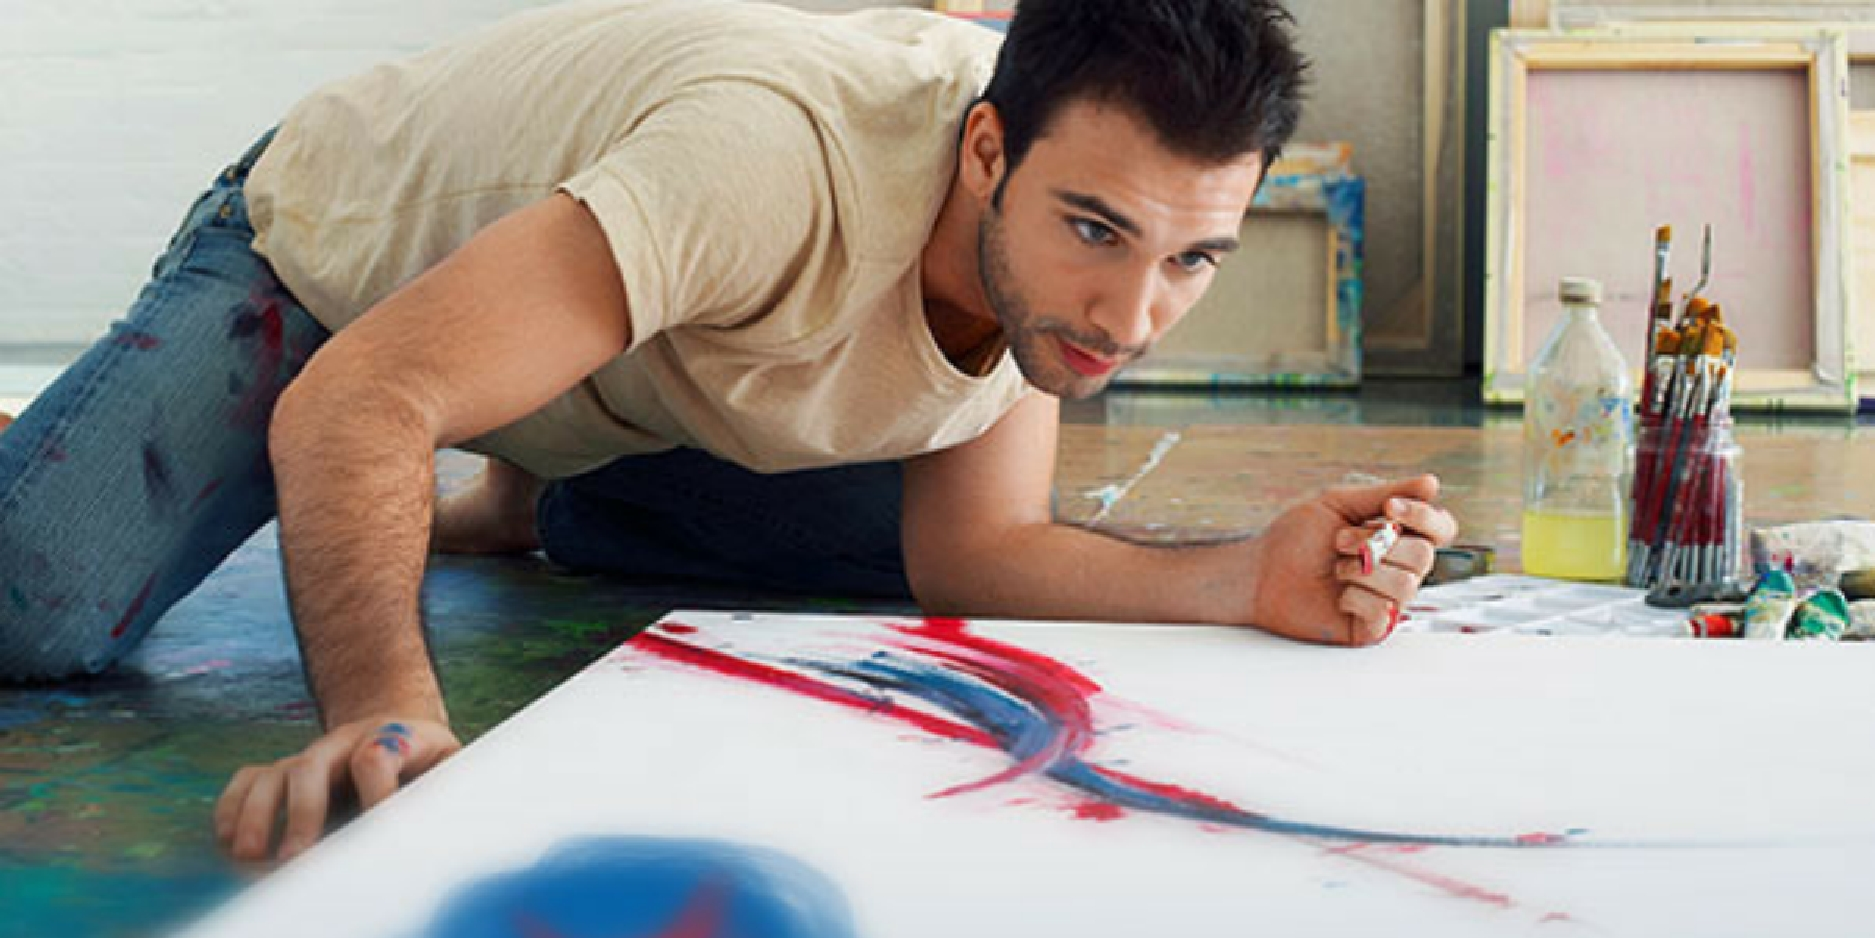 Lessons From the Art World How a Distinctive Personality Drives a Successful Business